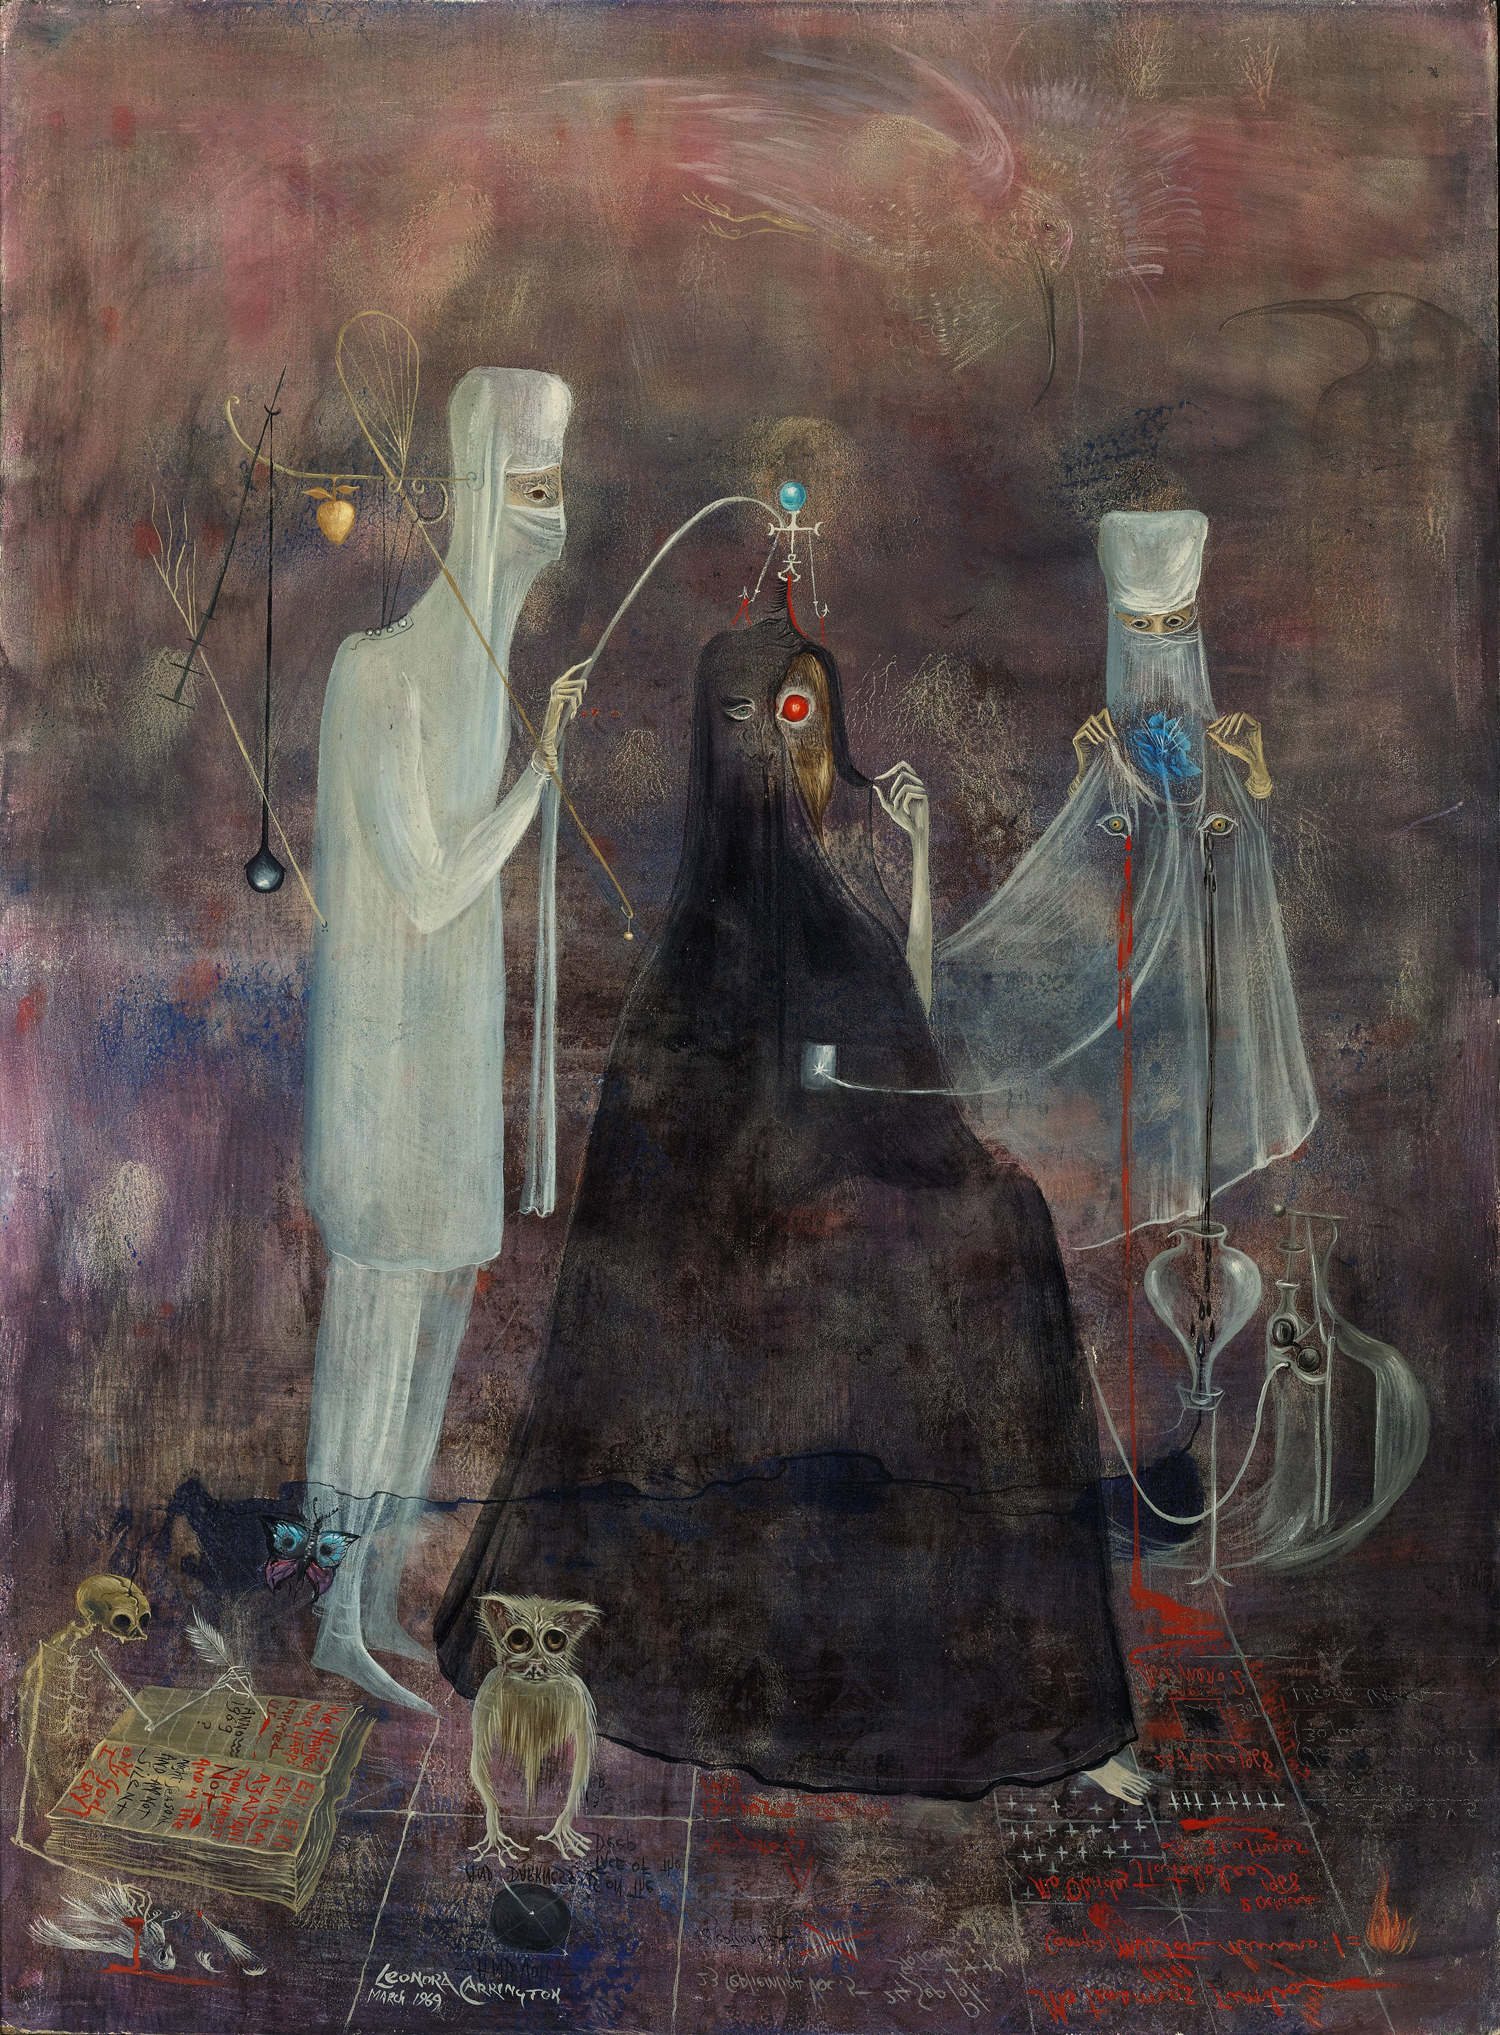 "LEONORA CARRINGTON, OPERATION WEDNESDAY, 1969, OIL AND TEMPERA ON HARDBOARD, 23 3/4″ X 17 5/8″. SIGNED L.L ""LEONORA CARRINGTON MARCH 1969""; INSCRIBED ""2 DE OCTUBRE 1968…NO OLVIDES TLATELOLCO…LAS TRES CULTURAS…NO TENEMOS TUMBA…CAMPO MILITAR NÚMERO 1,"" LOWER RIGHT; ""MARCH 1969 DR. FERNANDO ORTIZ MONASTERIO,"" VERSO. © 2019 ESTATE OF LEONORA CARRINGTON / ARTISTS RIGHTS SOCIETY (ARS), NEW YORK. COURTESY OF GALLERY WENDI NORRIS."